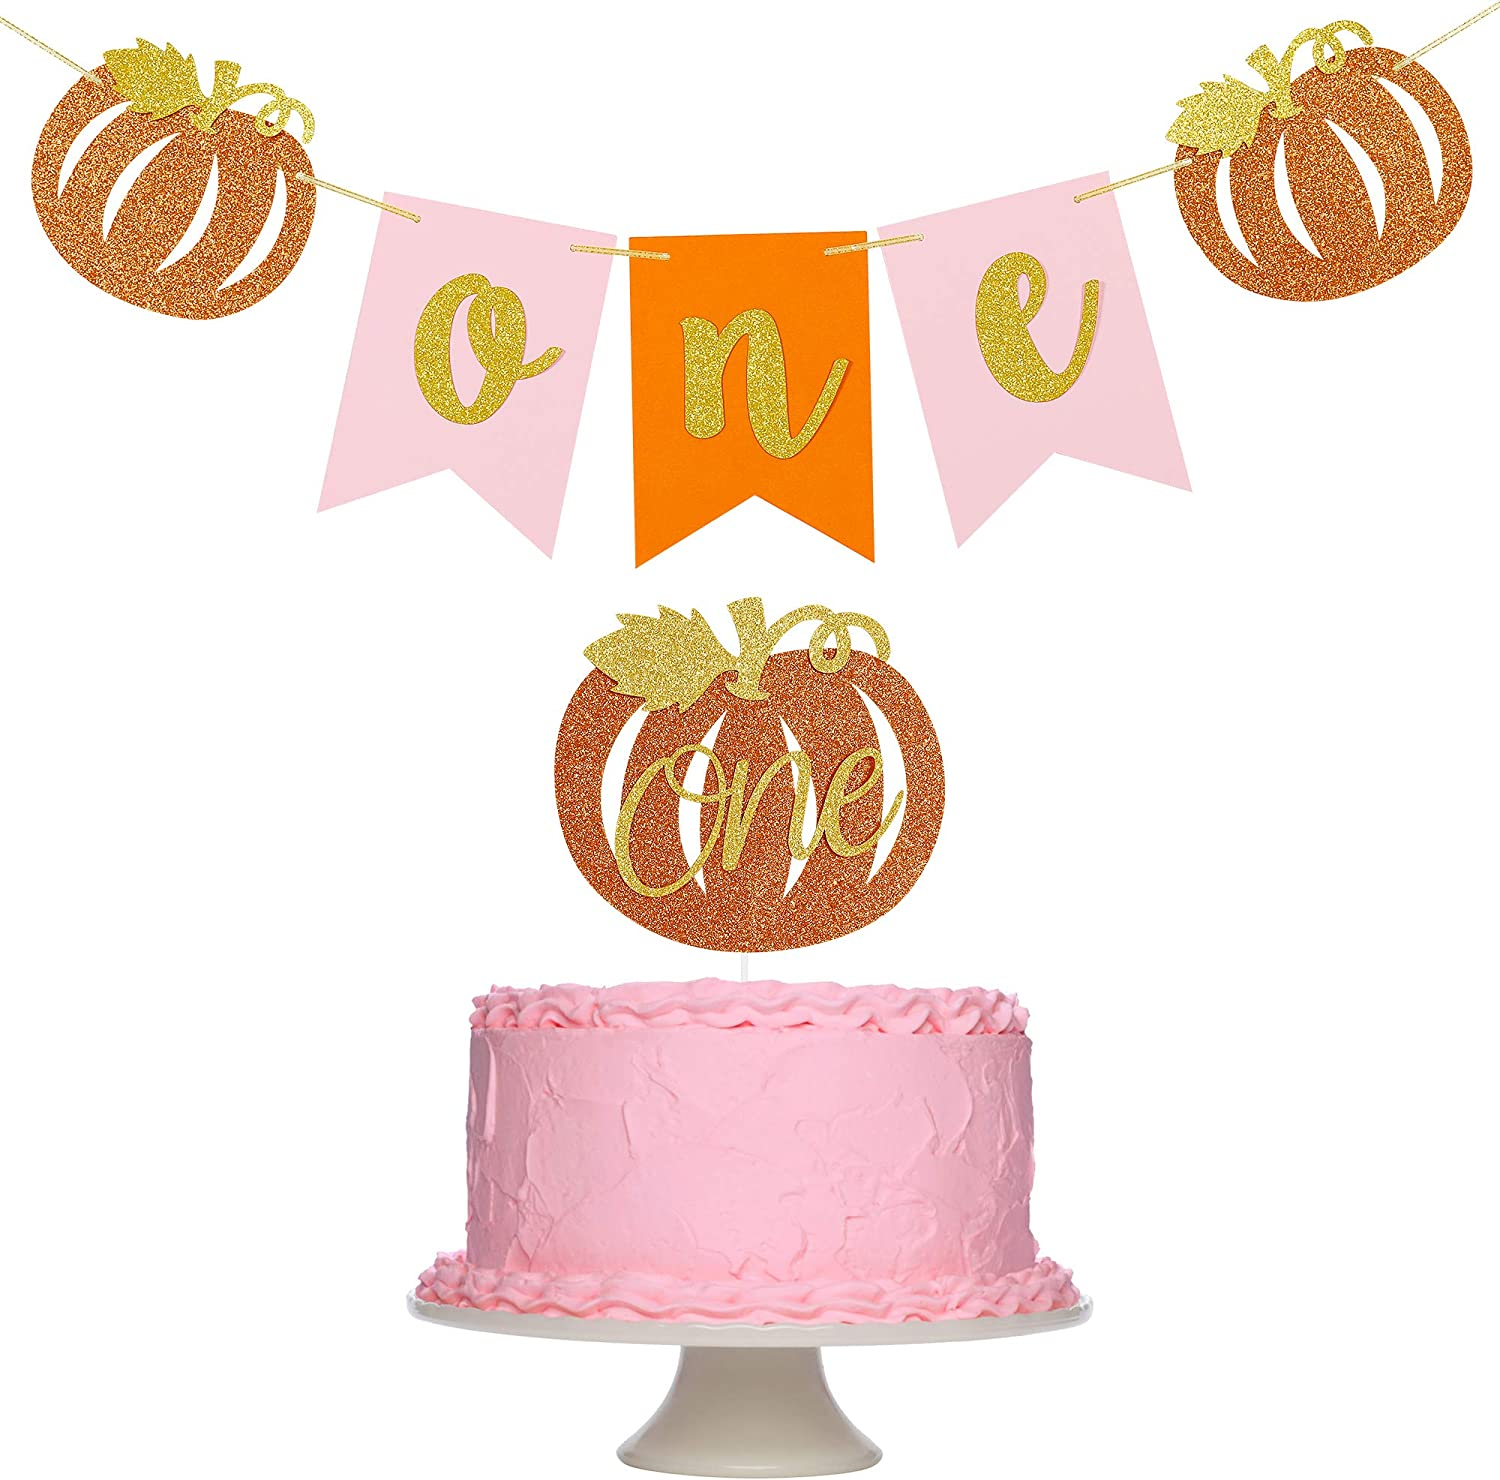 Fall Pumpkin One Banner + Pumpkin One Cake Topper for Thanksgiving Fall Pumpkin Themed 1st Birthday Party Decorations Supplies